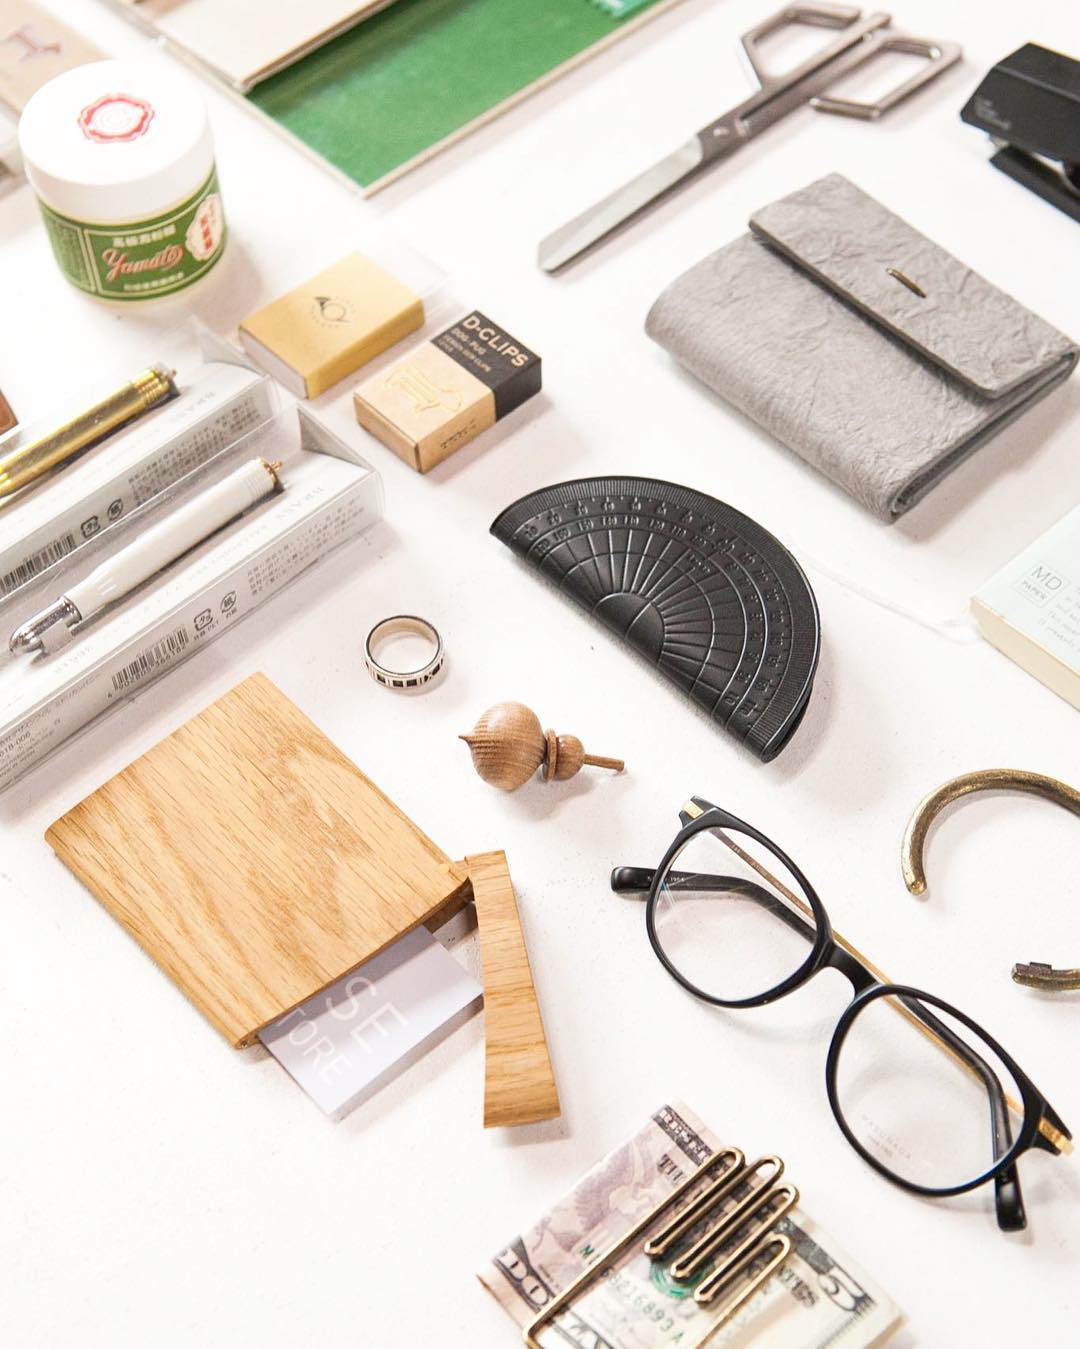 an overhead view of accessories from Tortoise General Store